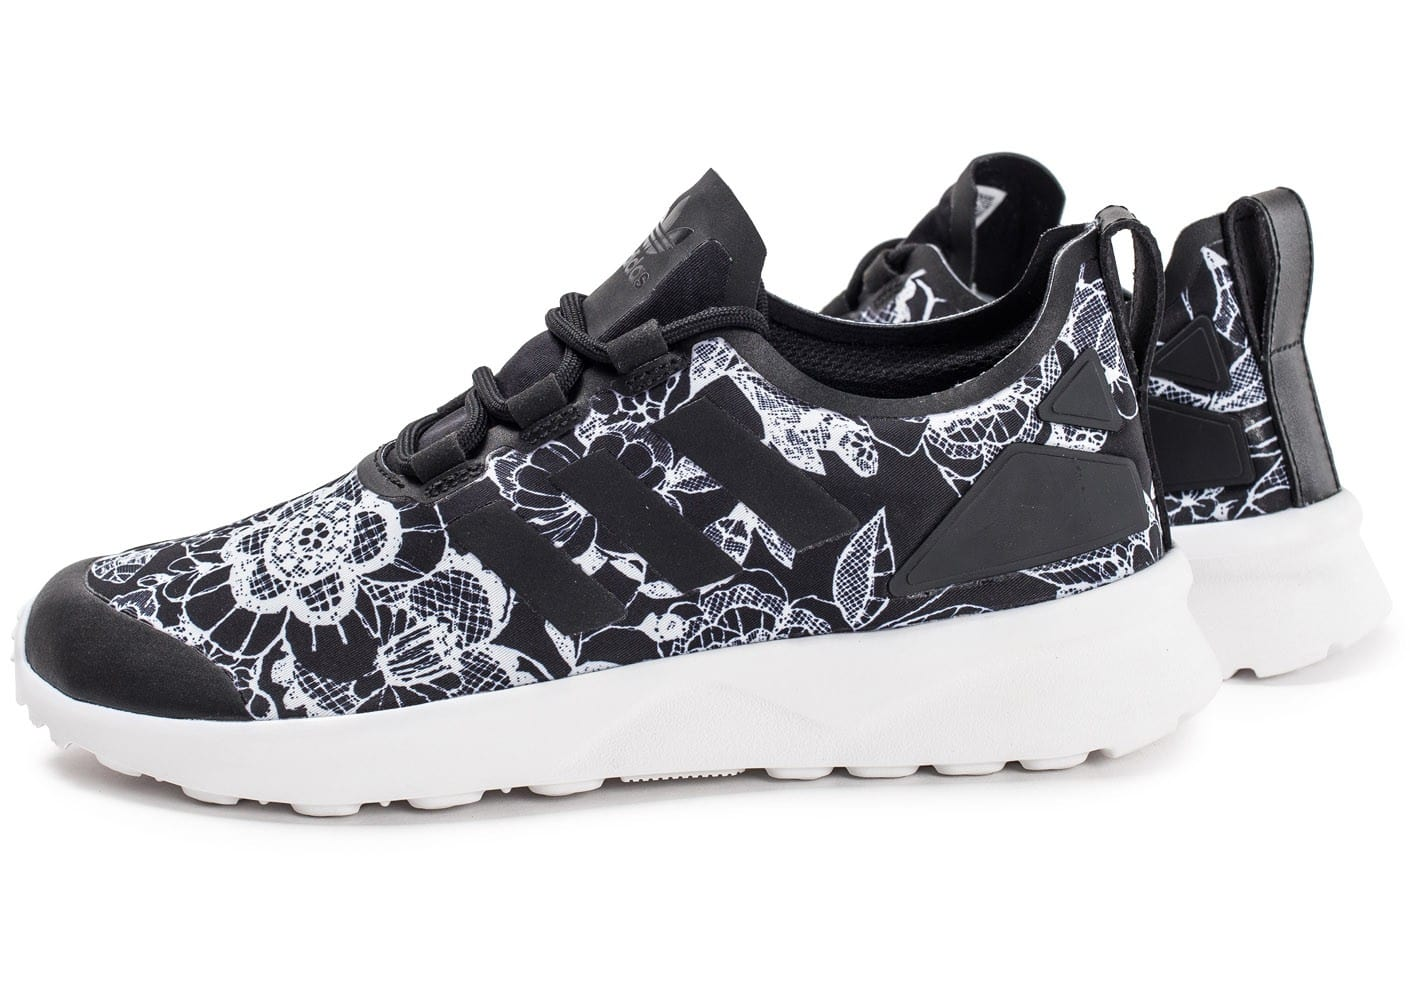 adidas Soldes - Zx Flux Adv Verve The Farm Company